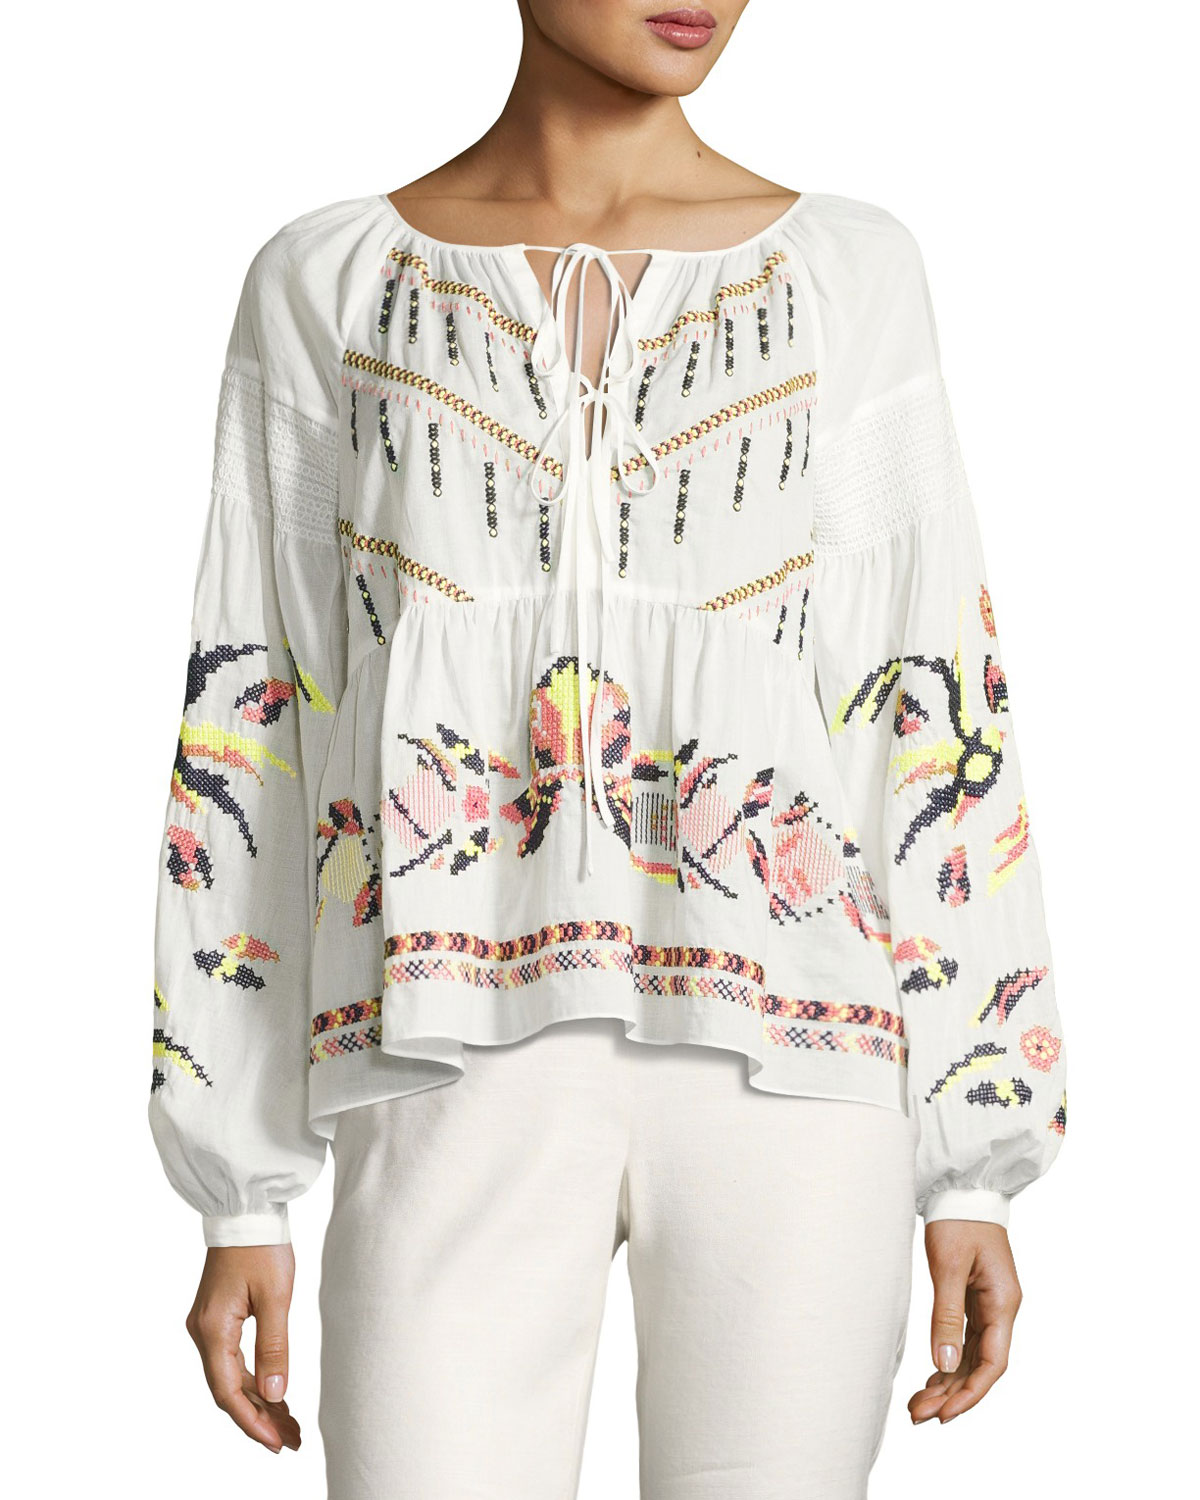 Tanya Taylor Clemence Cross Stitch Embroidered Top White Neiman